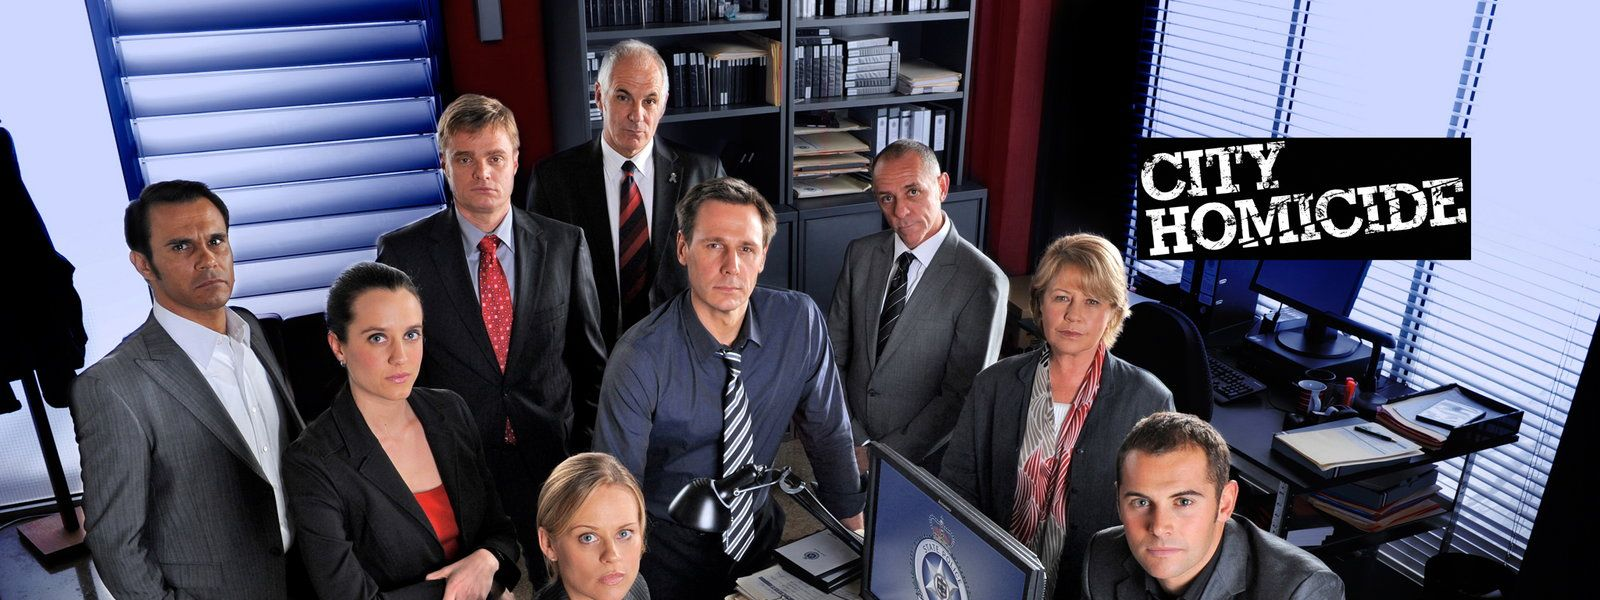 Pin On The Best Crime Tv You Maybe Haven T Seen